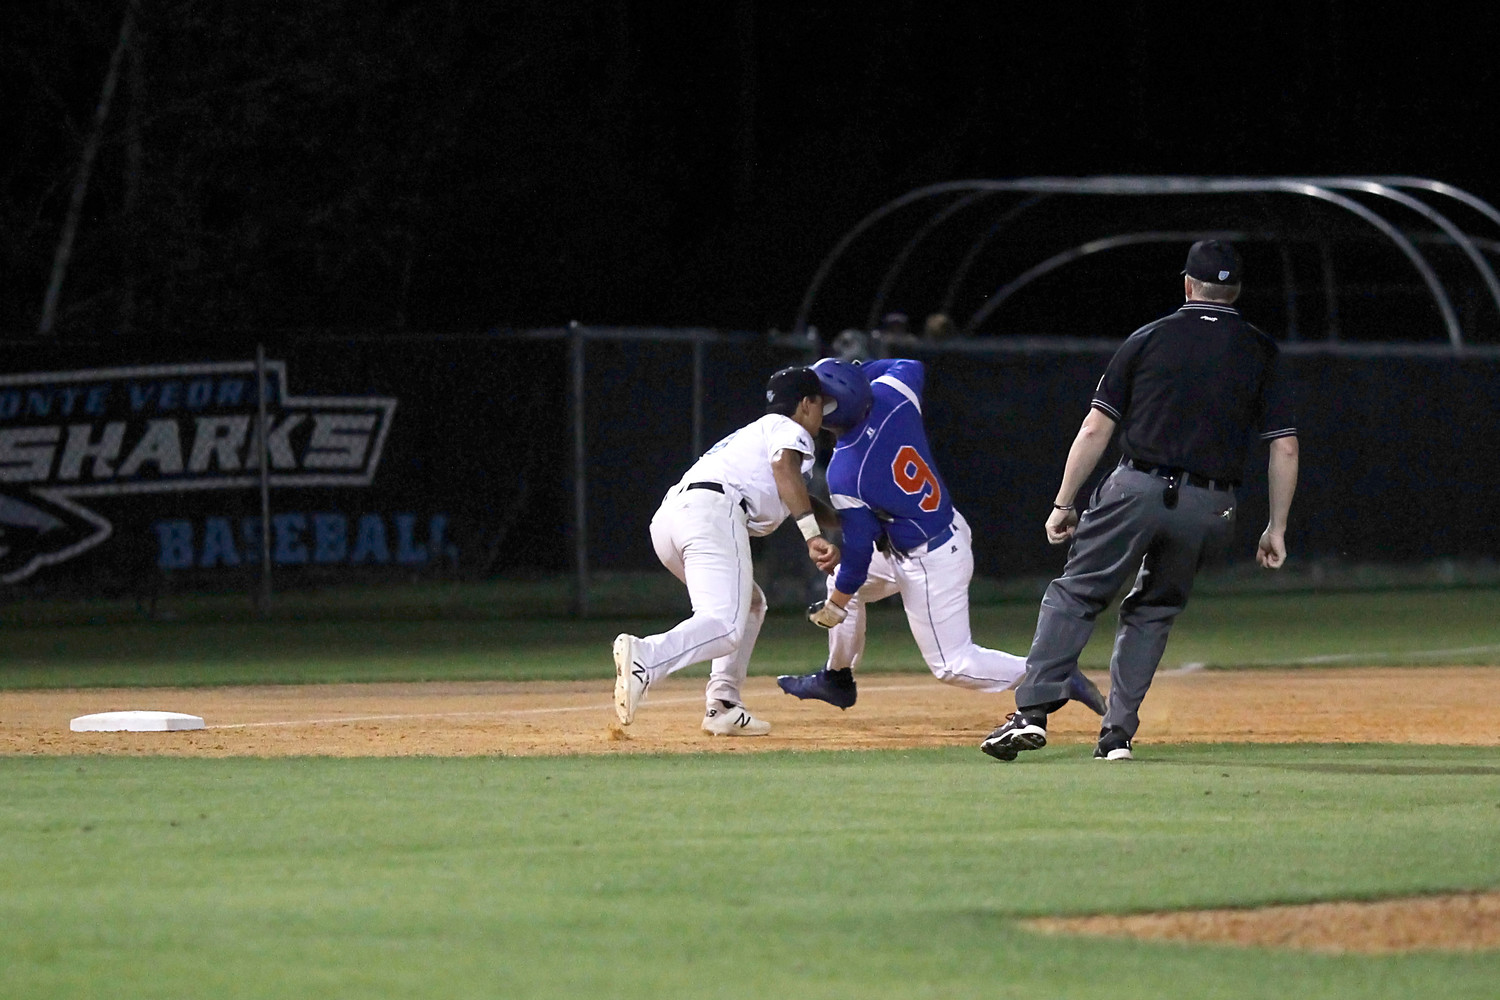 Sharks third baseman Sebastian Rothman tags the Bolles runner attempting to reach third on a base hit.